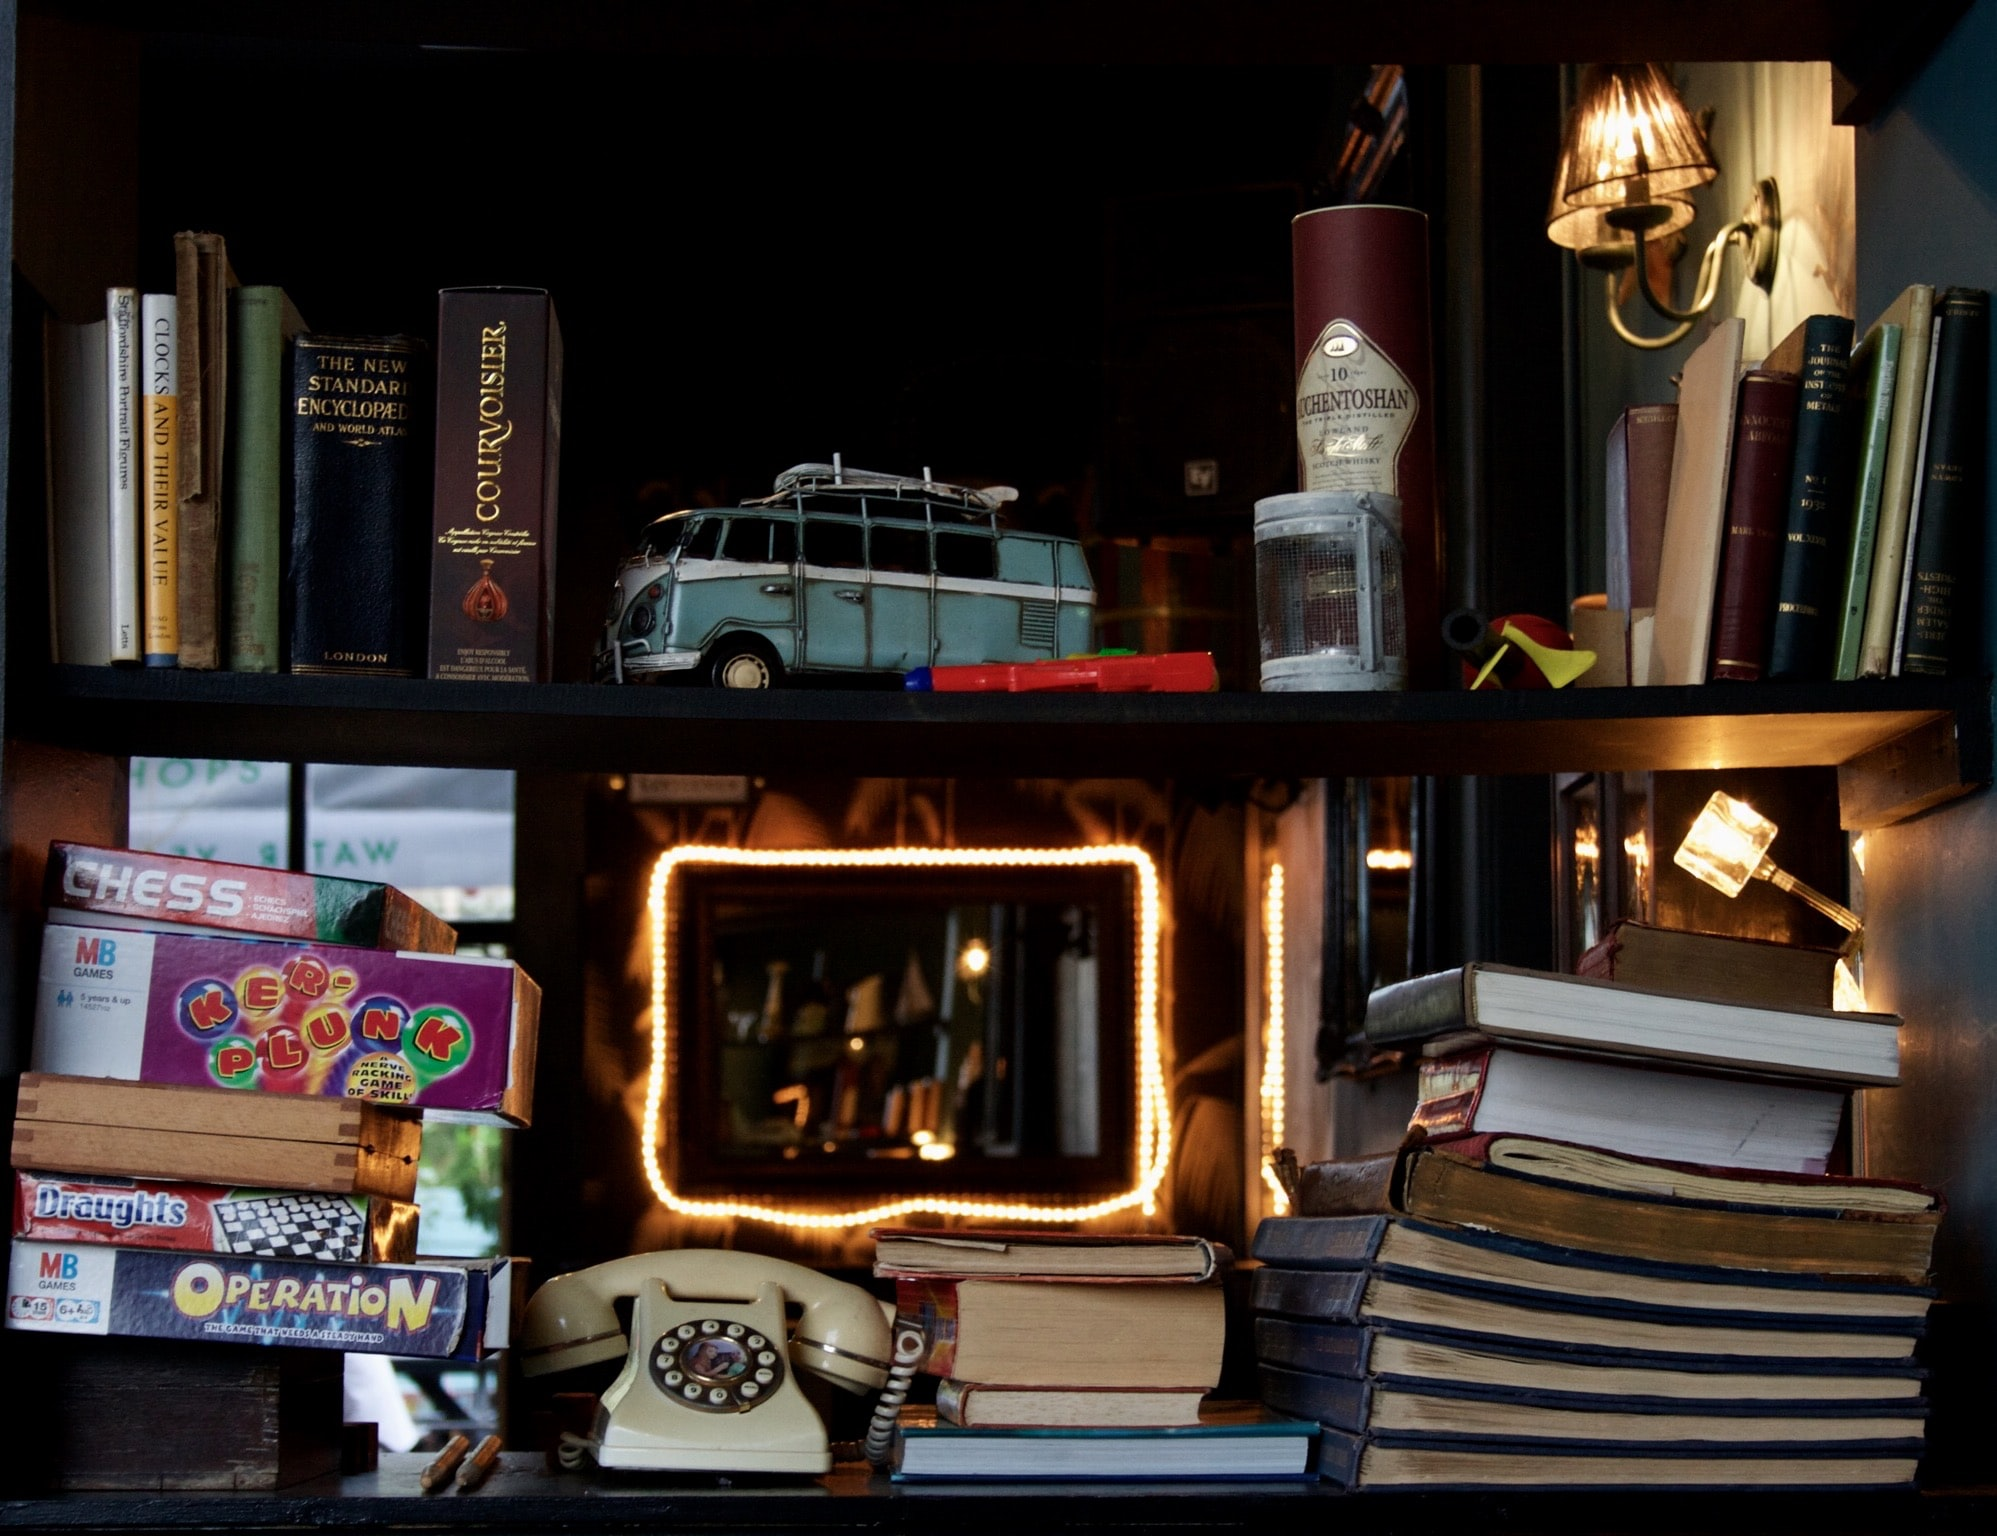 Have you heard of the book nook trend? A book nook is a cute little insert that tucks between the books on your bookshelf. It's basically a whole new (miniature!) world on your bookshelf. Pretty cool, right? Look here for the best book nook ideas!